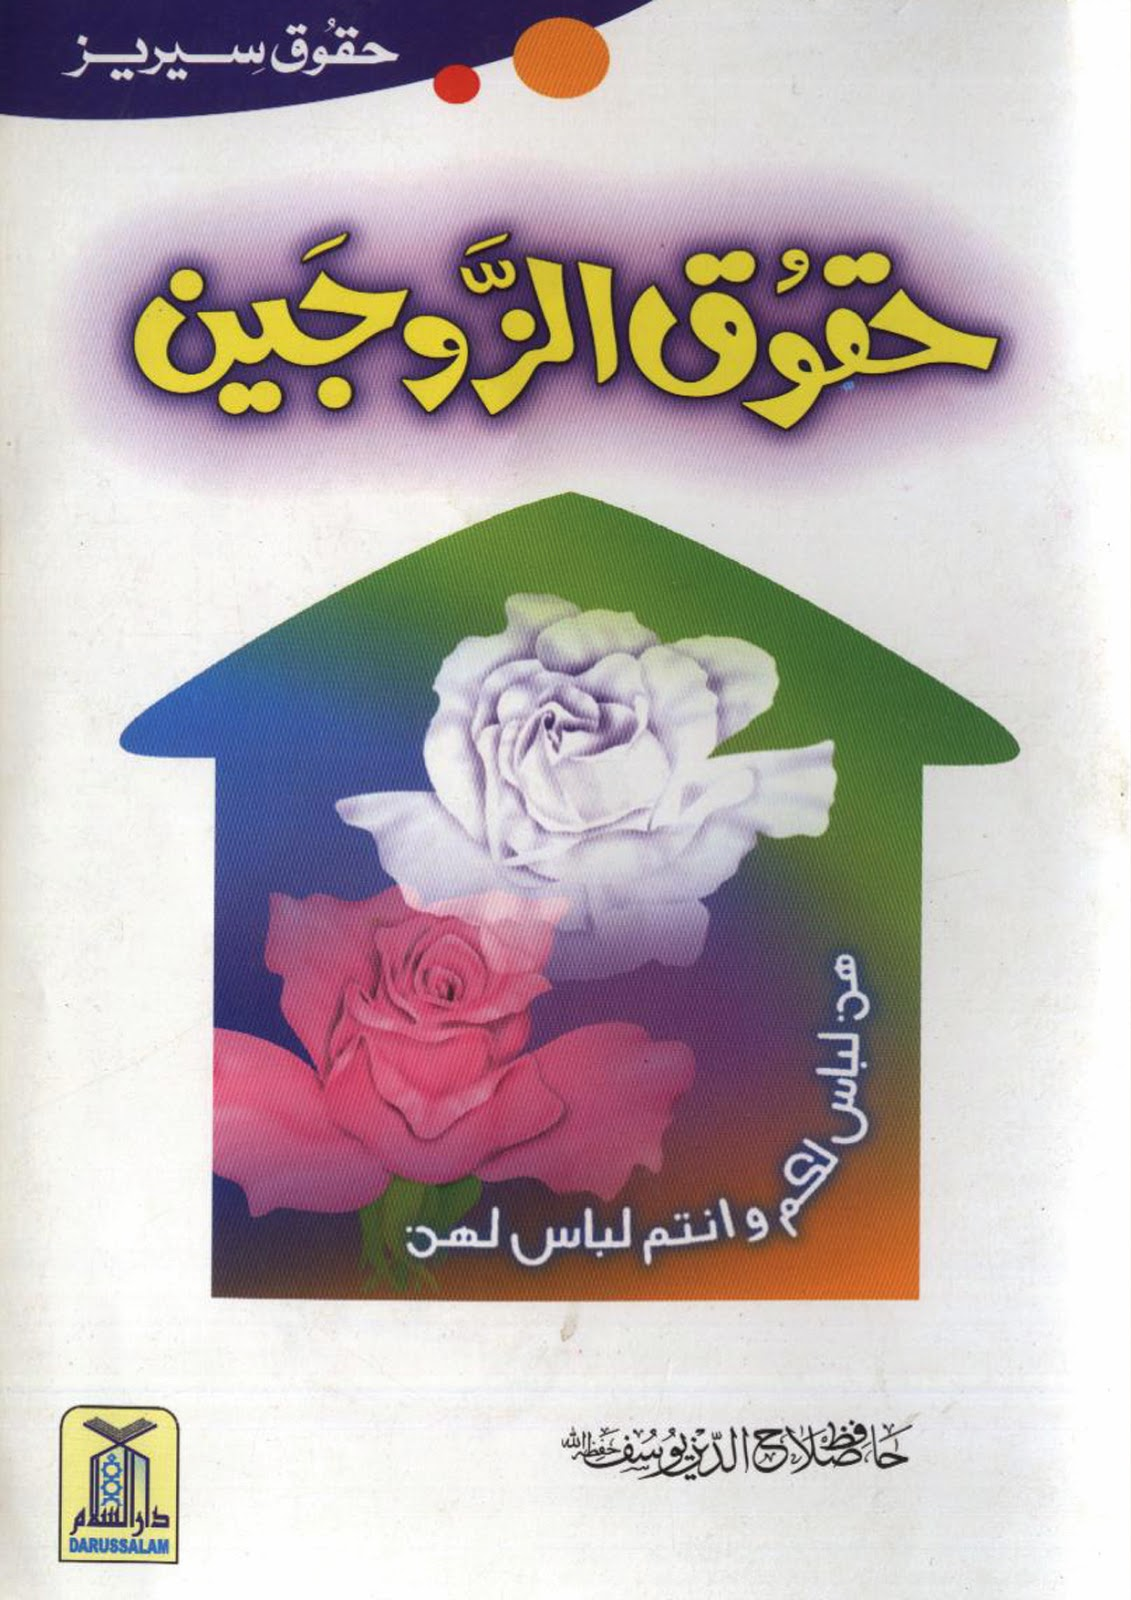 http://urduguru1.blogspot.com/2014/02/rights-of-spouses-in-urdu-pdf.html